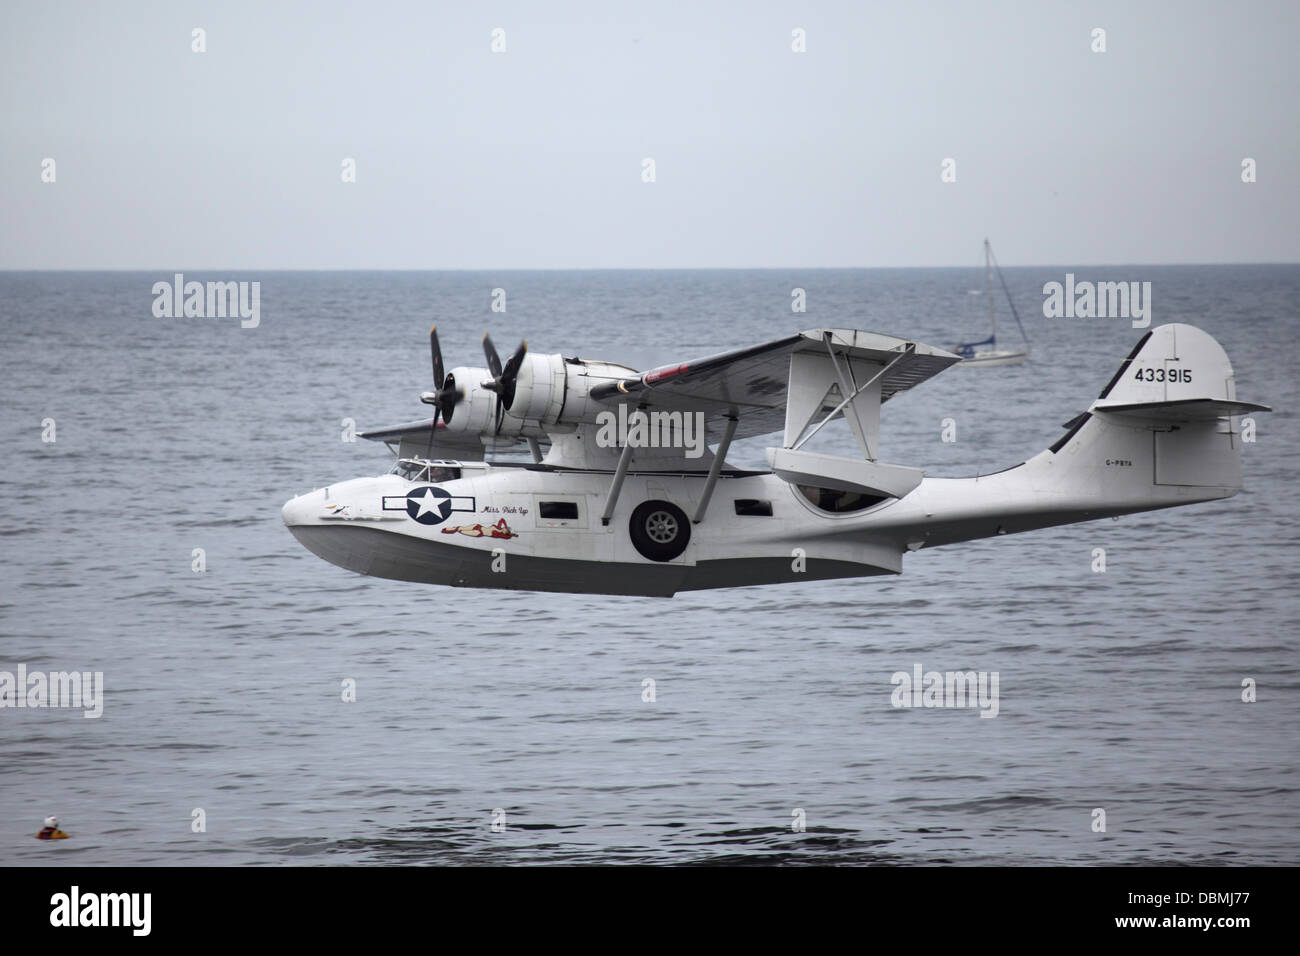 A US Army Airforce Consolidated PBY-5A Catalina flying at the 2013 Sunderland International Airshow. - Stock Image